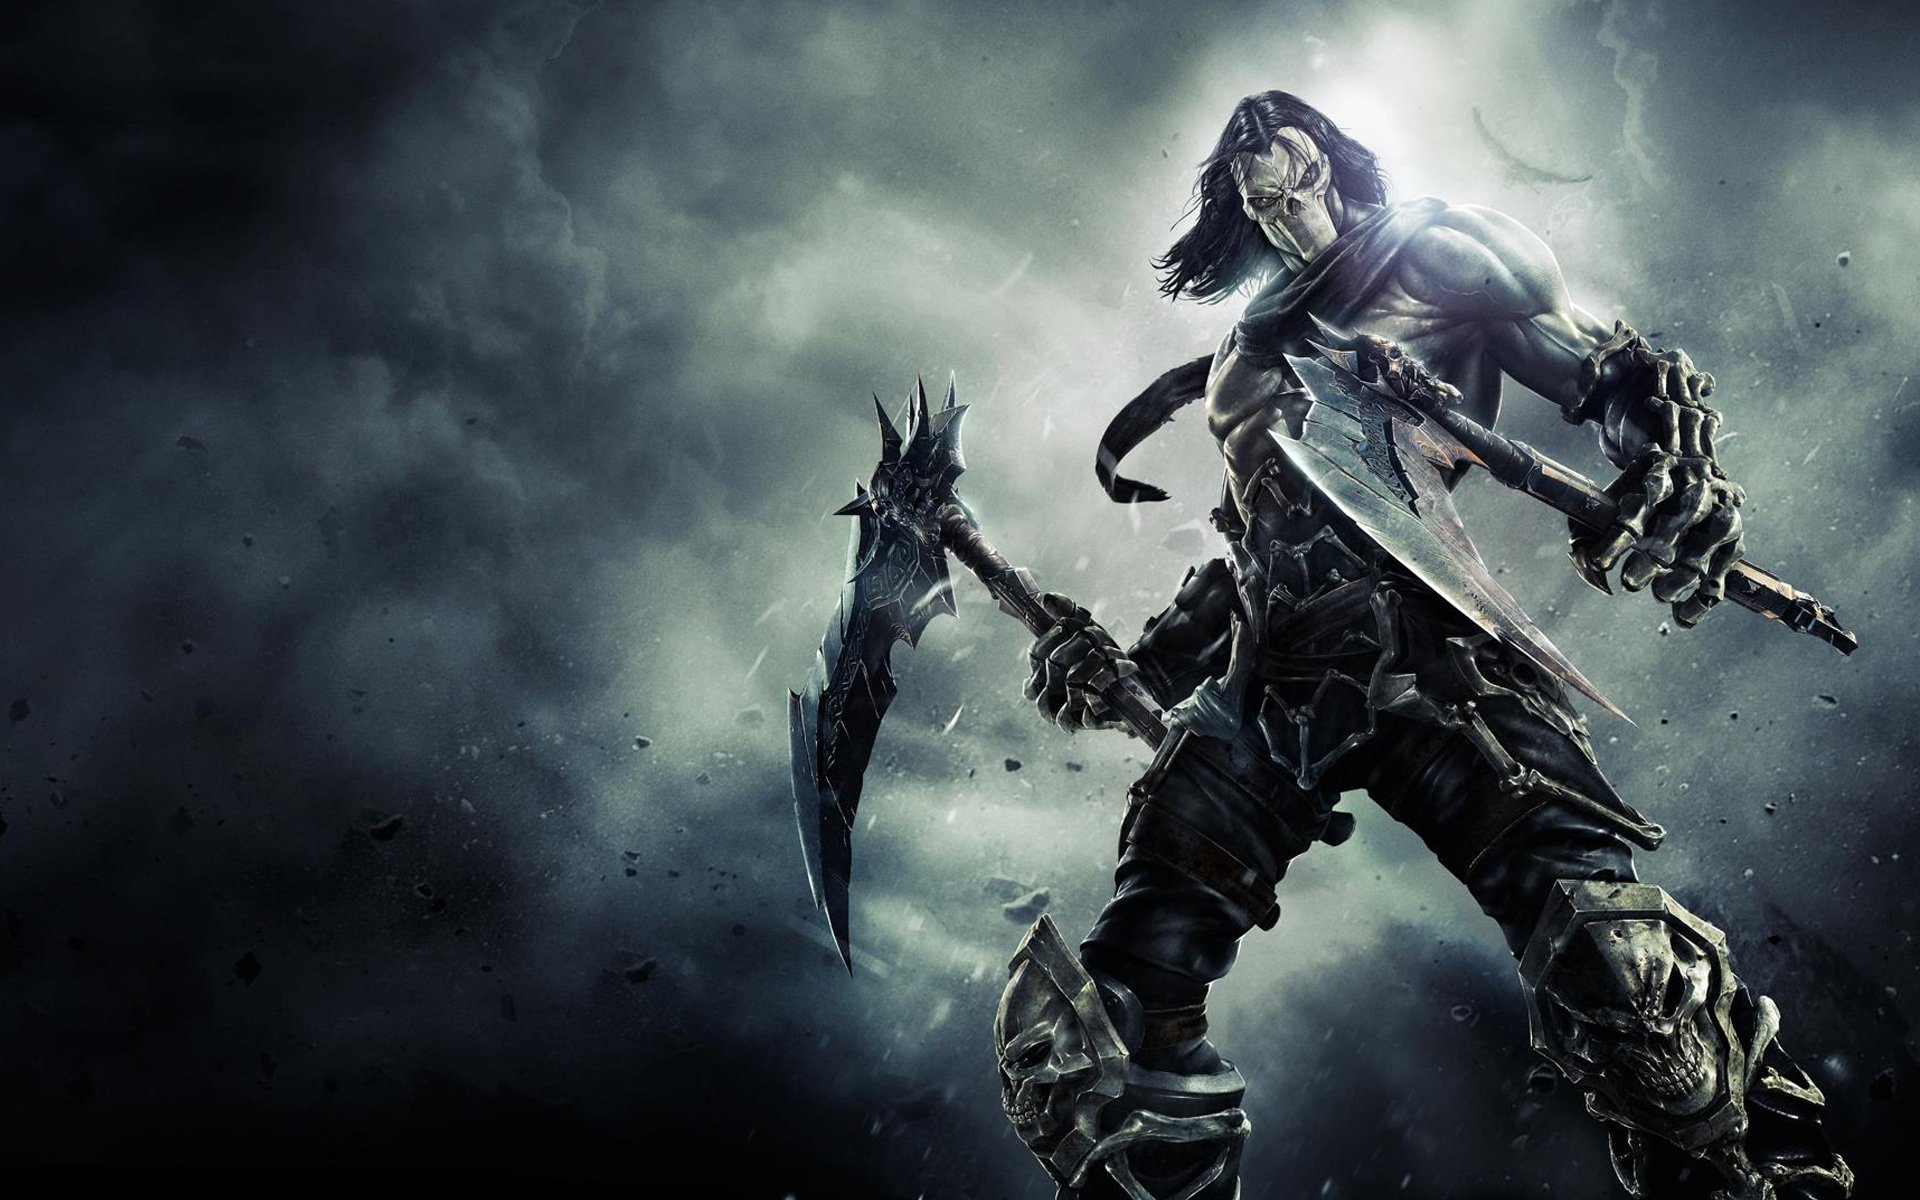 52 darksiders ii hd wallpapers | background images - wallpaper abyss